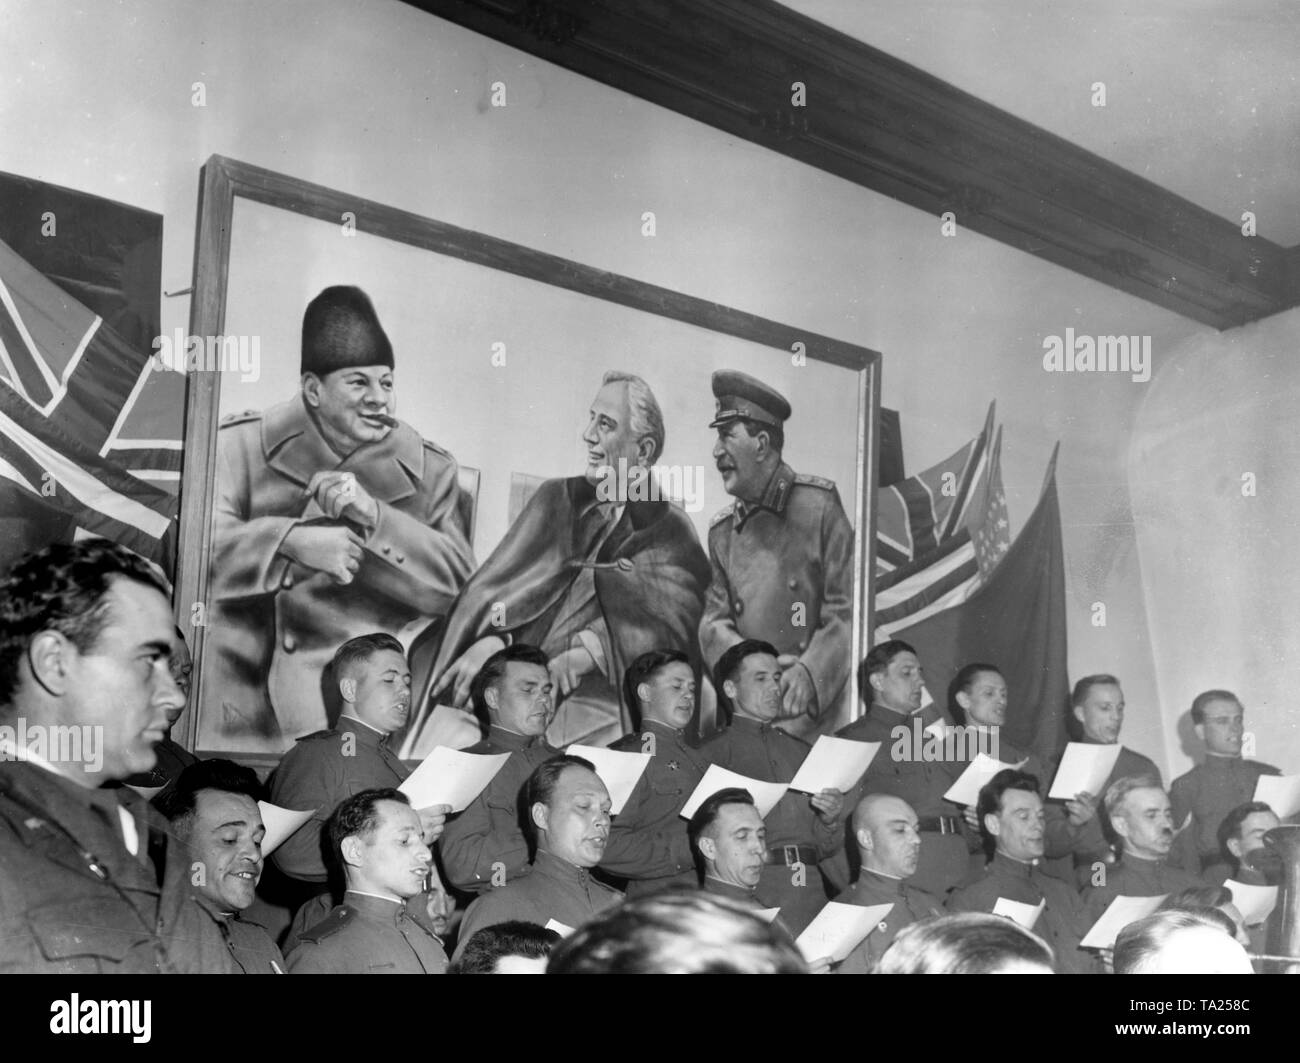 A Russian soldiers' choir sings at the Soviet headquarters on the occasion of the meeting with American troops. In the background a picture showing the heads of state of the Allied nations (from left: Churchill, Roosevelt, Stalin) at the Yalta conference. Stock Photo